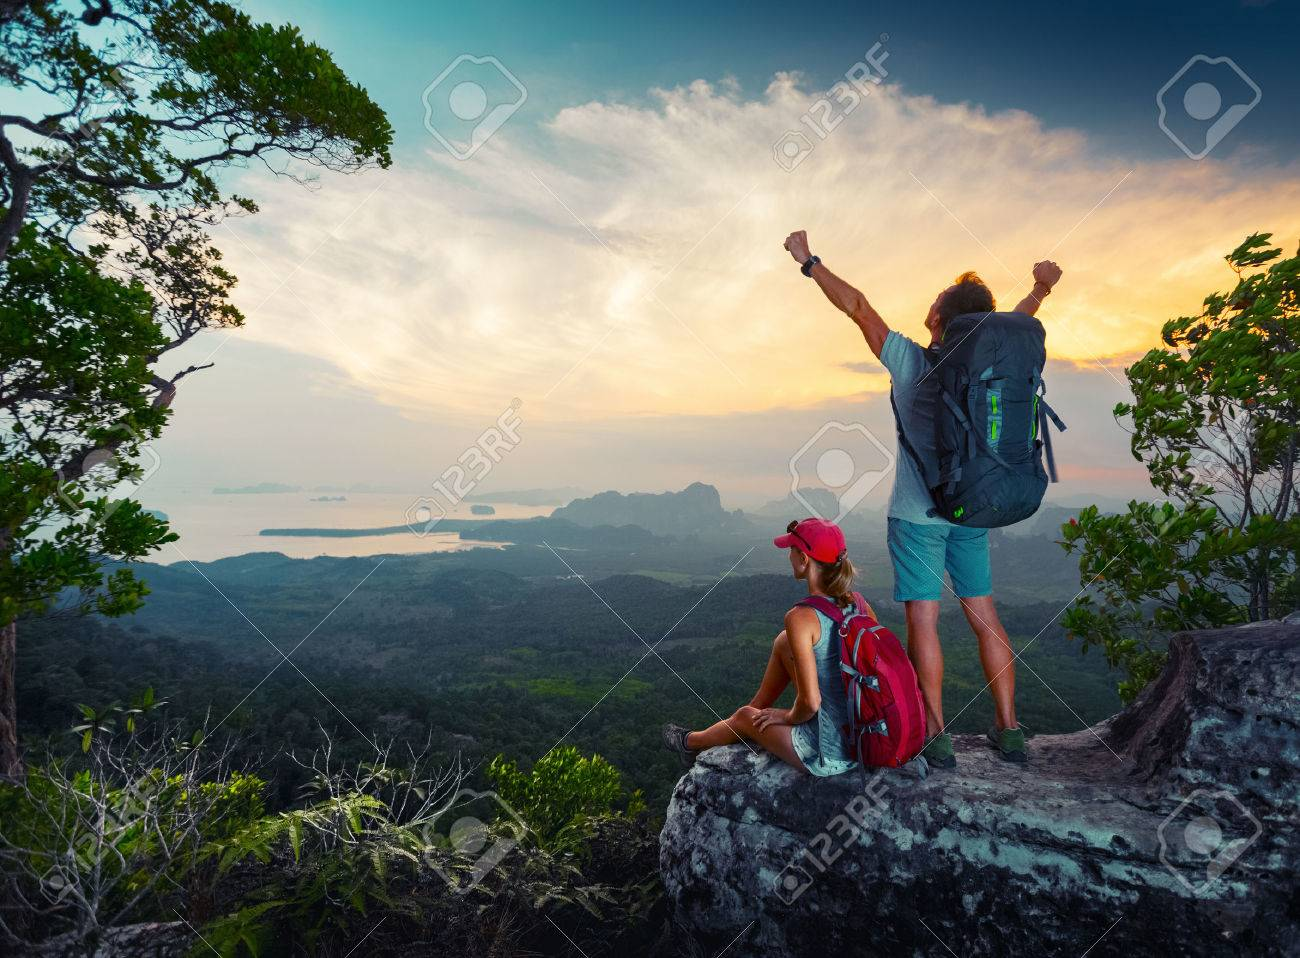 Two hikers relaxing on top of the mountain and enjoying sunset valley view Stock Photo - 48201130